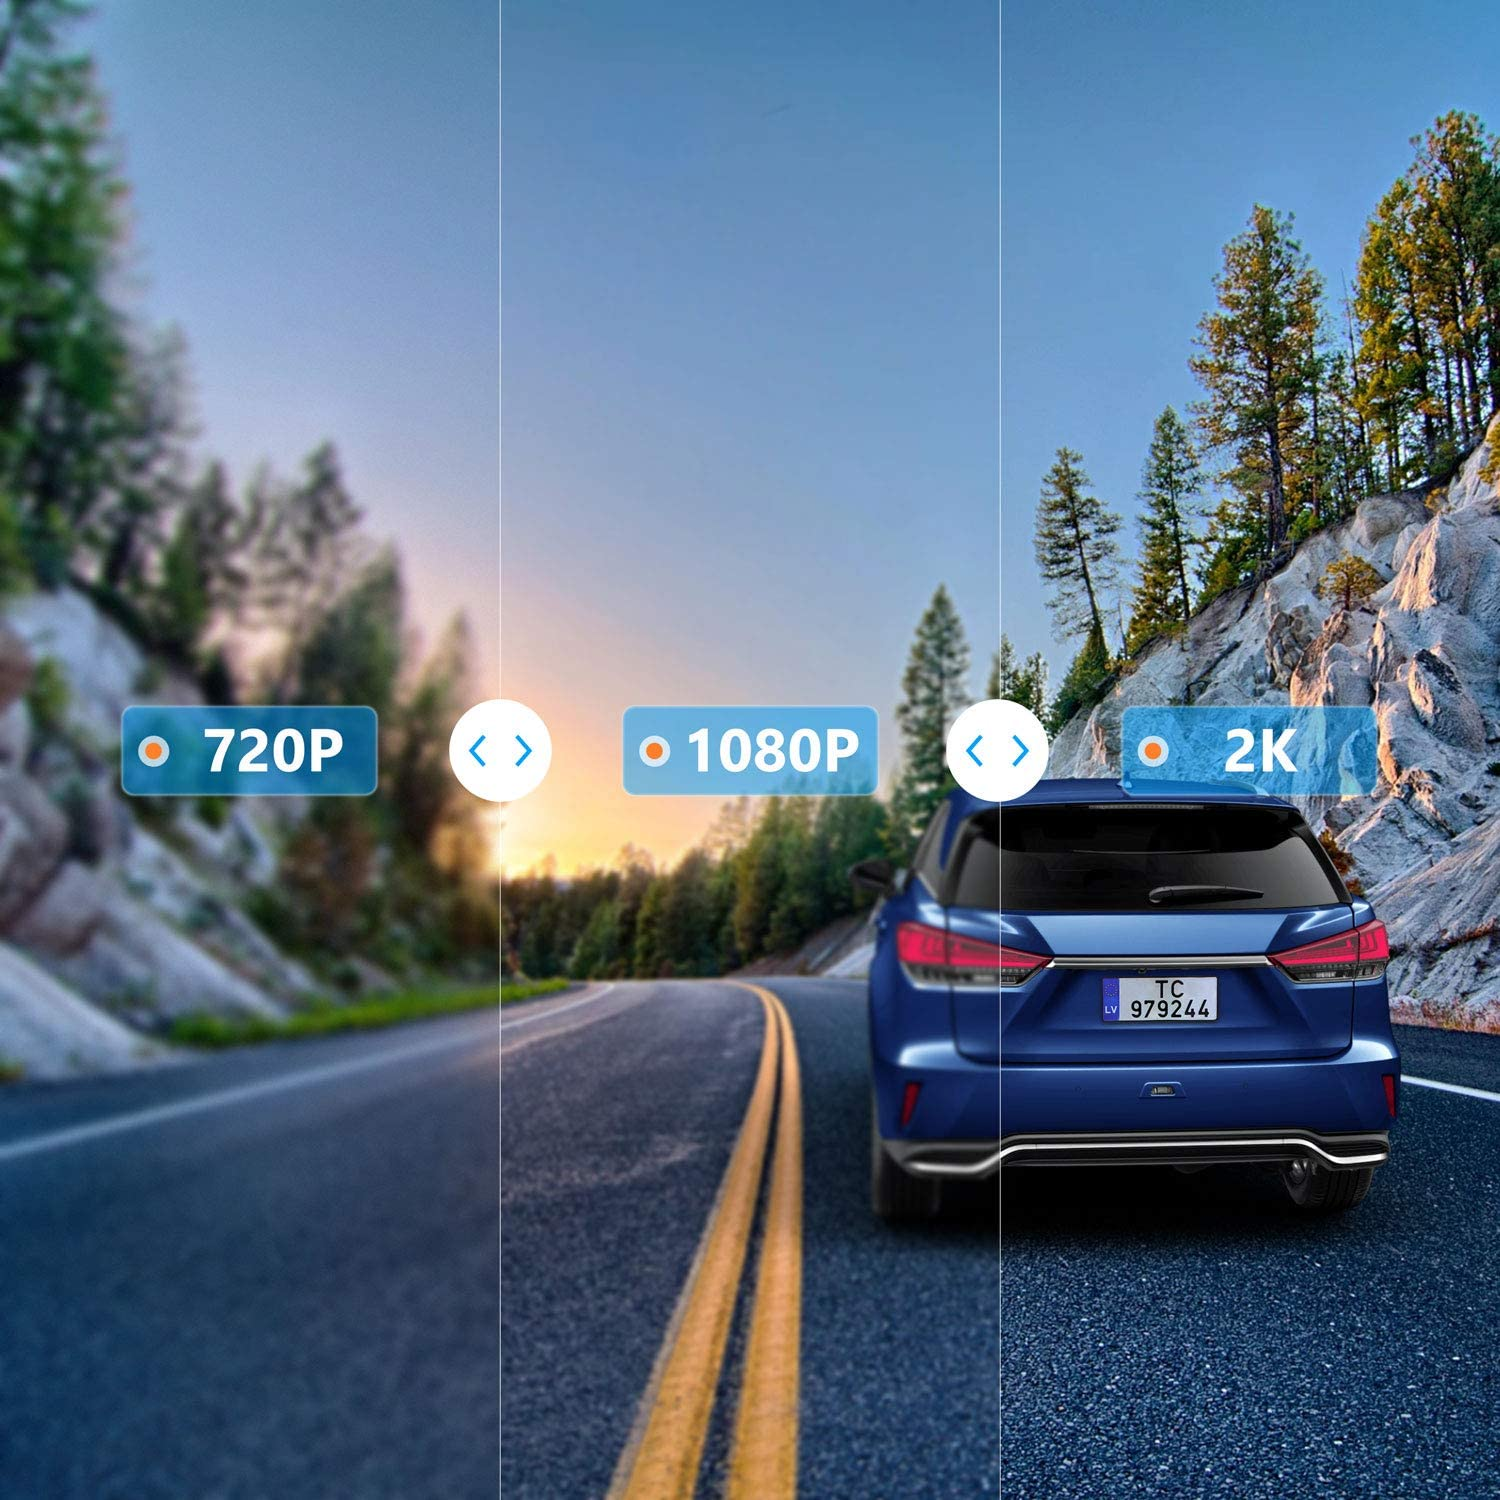 TOGUARD Backup Camera 12 Mirror Dash Cam Touch Screen Voice Command 2K Dual Dash Camera for Cars Streaming Video Rear View Camera with 1080P Waterproof Rear Camera